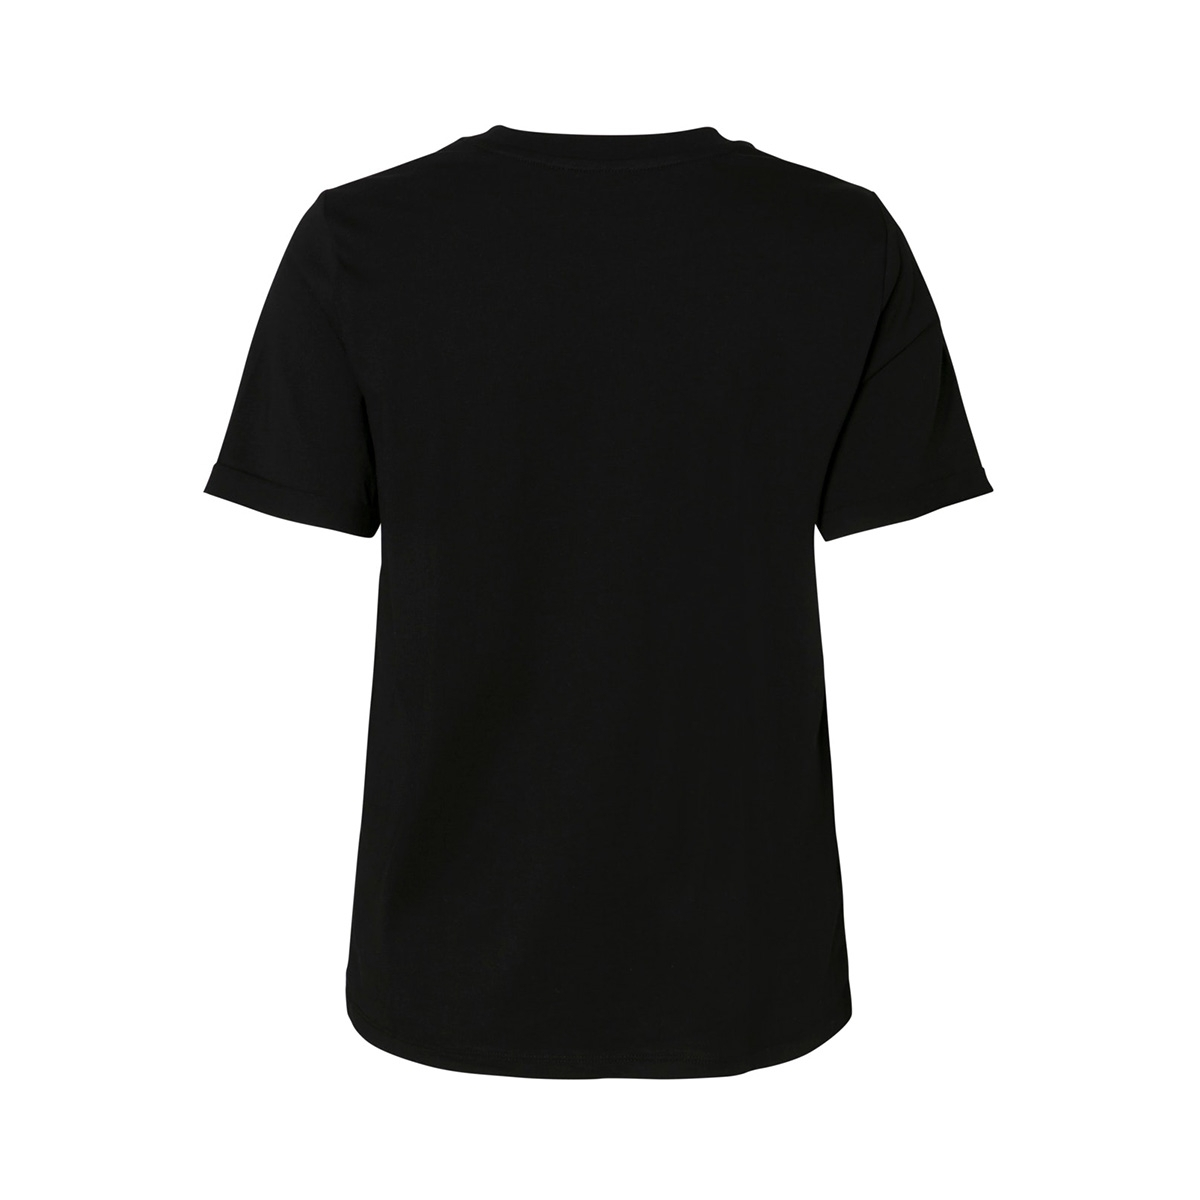 pcria ss fold up solid tee noos bc 17086970 pieces t-shirt black